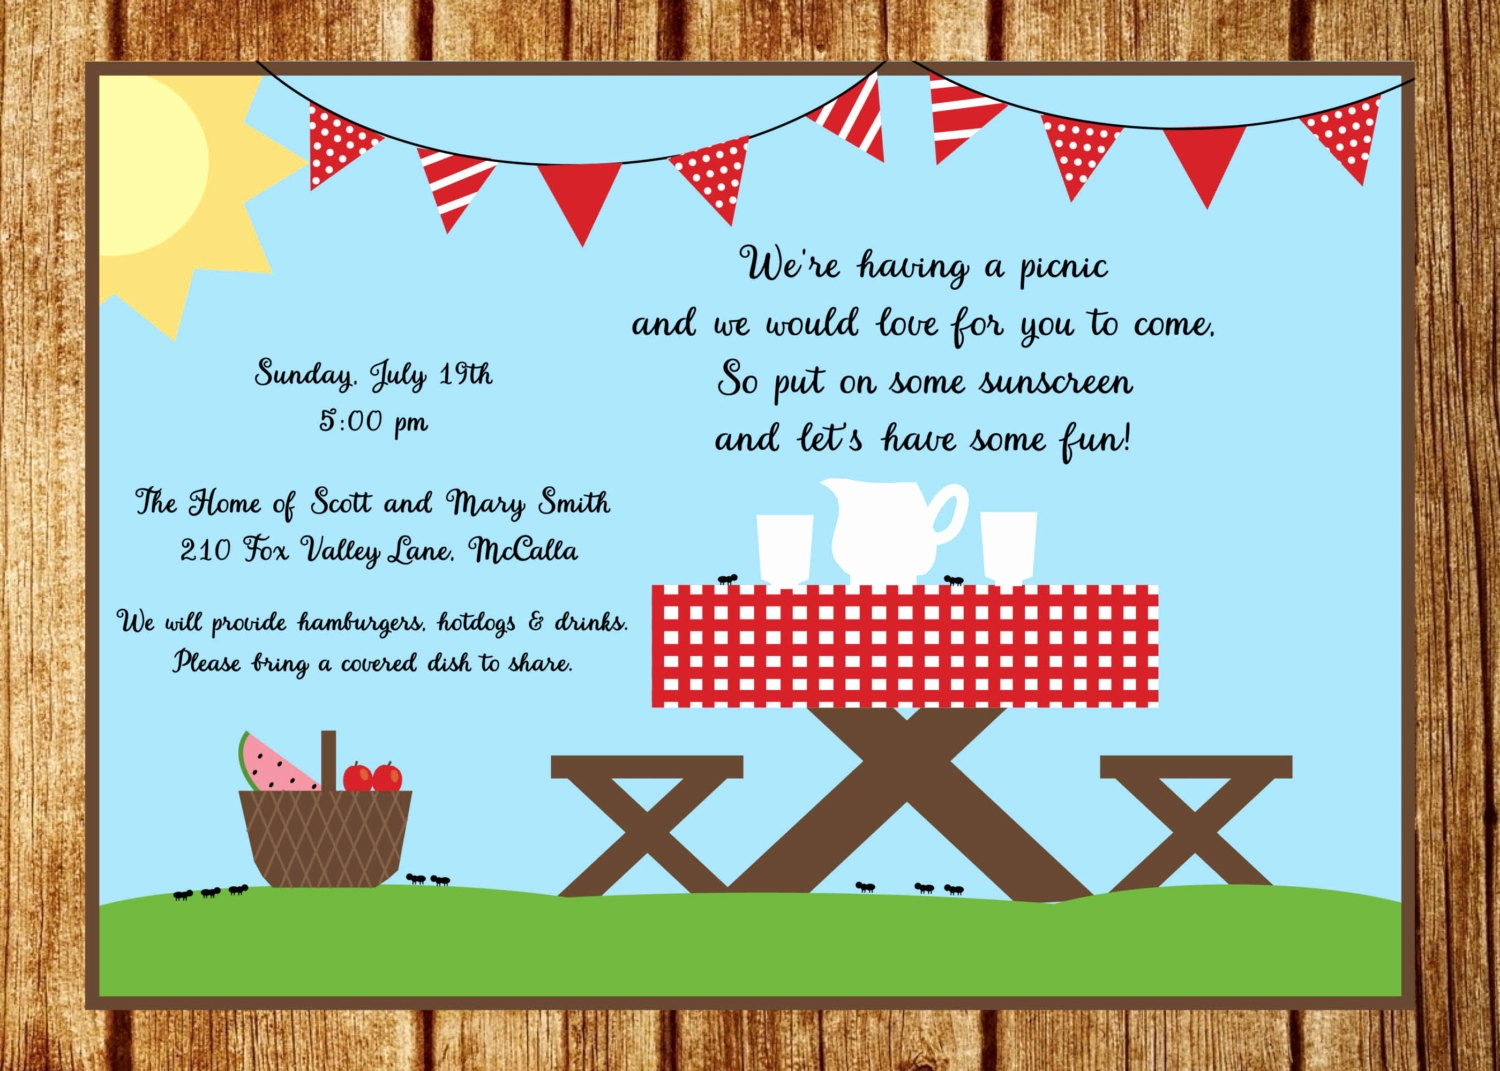 Free Printable Picnic Invitation Template Luxury Picnic Invitation Templates